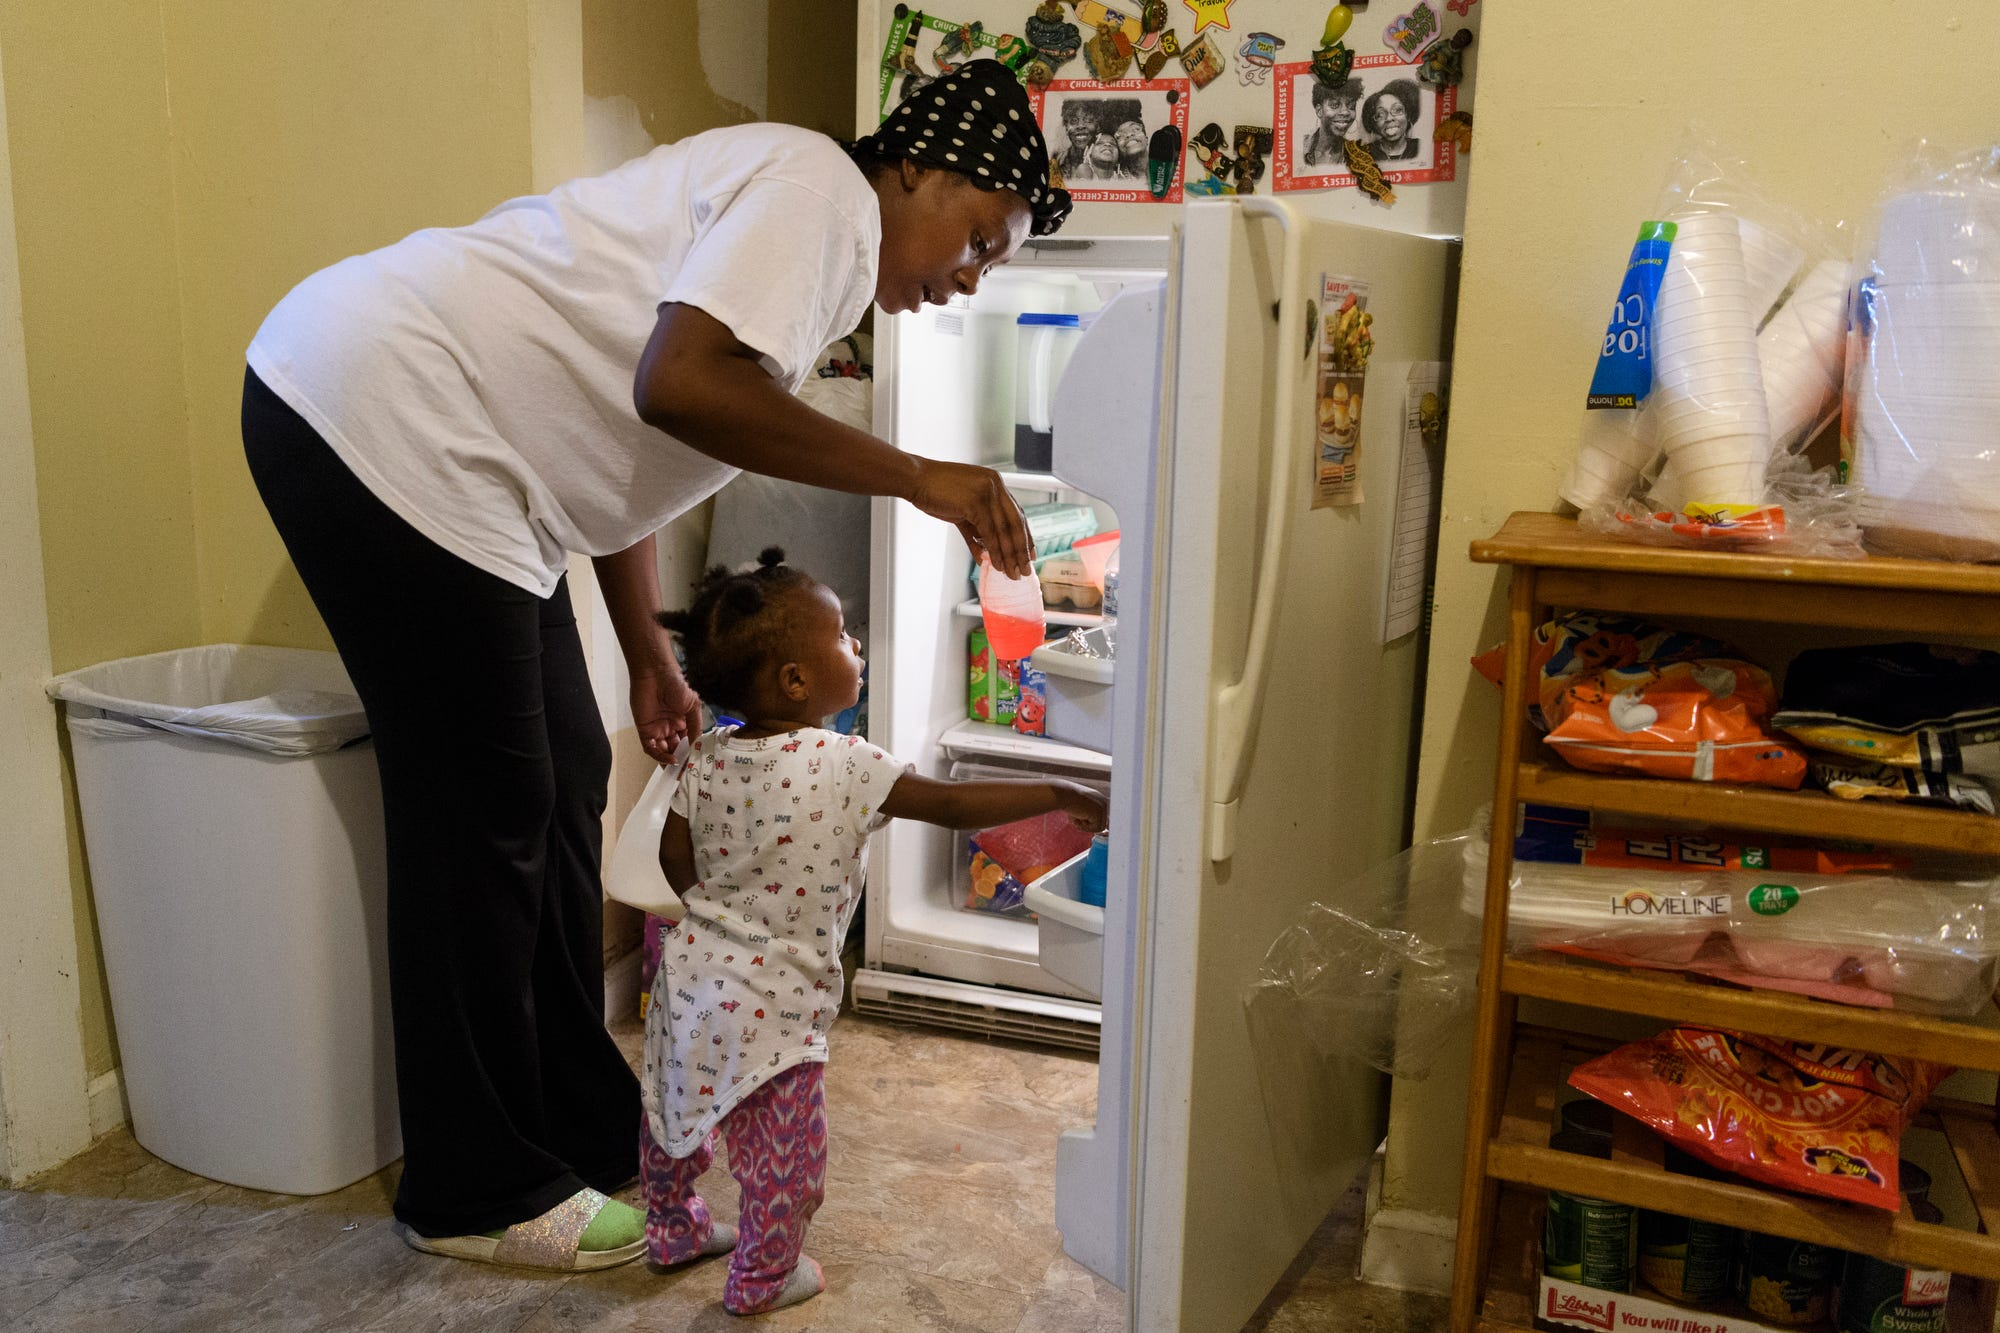 Tamisha Dilworth hands her youngest daughter Teresa, 1, a drink before serving her three children dinner at her father's house in Evansville, Ind., Monday, Sept. 24, 2018. Dilworth saved money by moving out of a three-bedroom apartment to live with her father, Robert Bradley, not pictured, for seven months while working through the nearly year-long  Habitat for Humanity program.